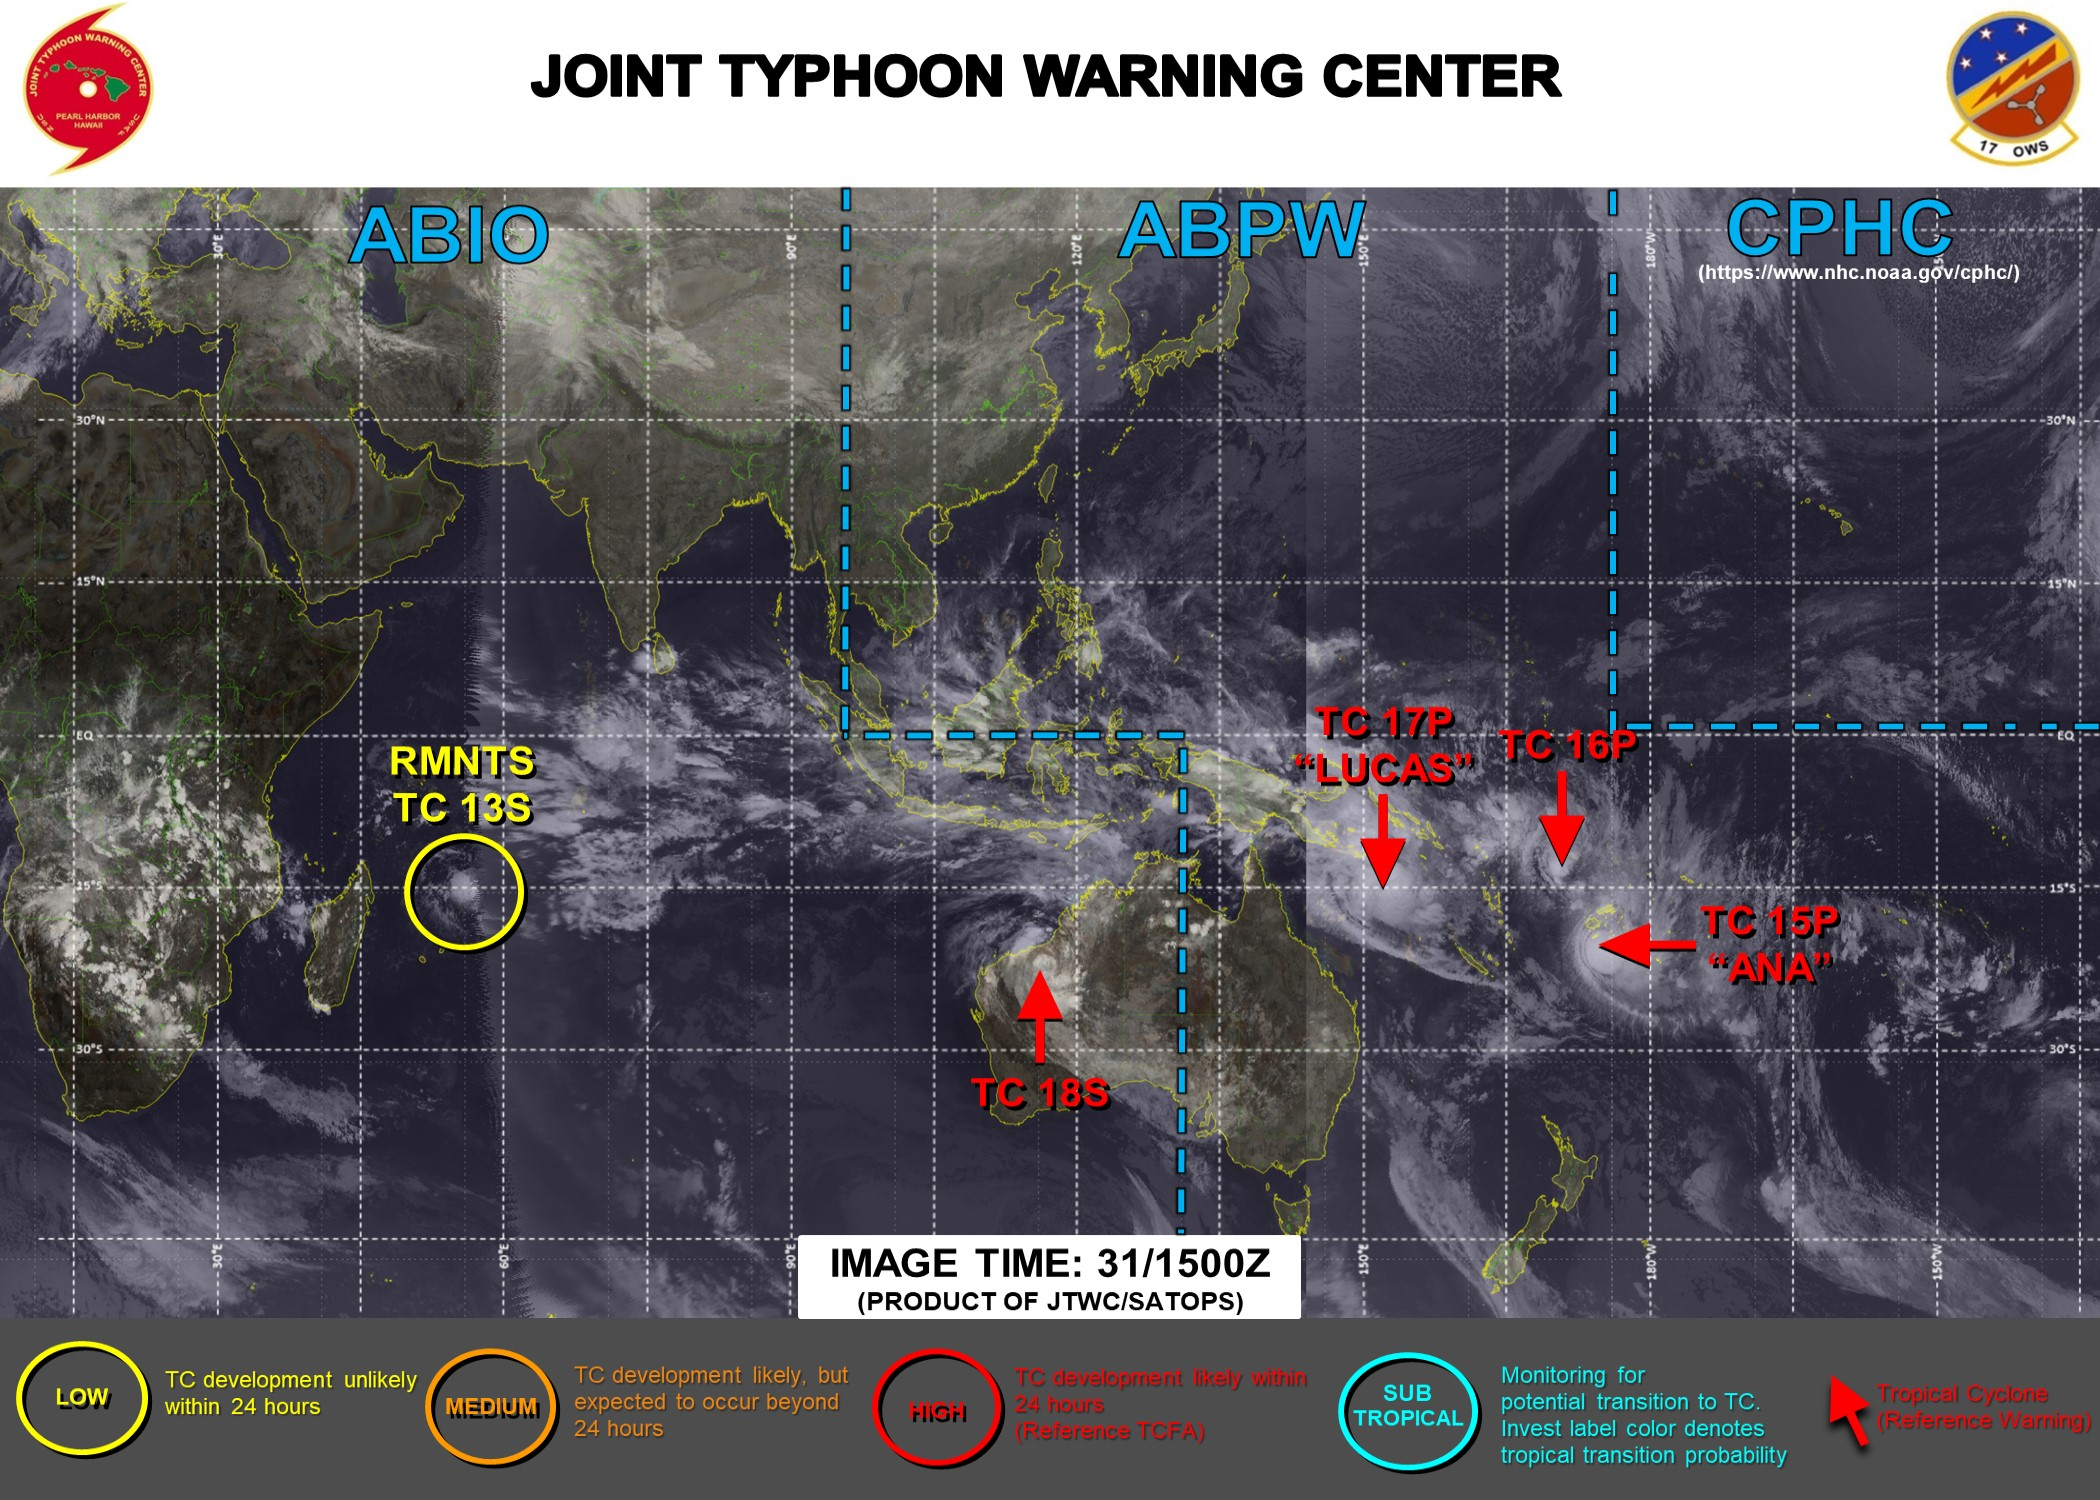 JTWC IS ISSUING 6HOURLY WARNINGS ON 15P(ANA), 16P, 17P(LUCAS), 18S. 3 HOURLY SATELLITE BULLETINS ARE PROVIDED FOR THE 4 CYCLONIC SYSTEMS.